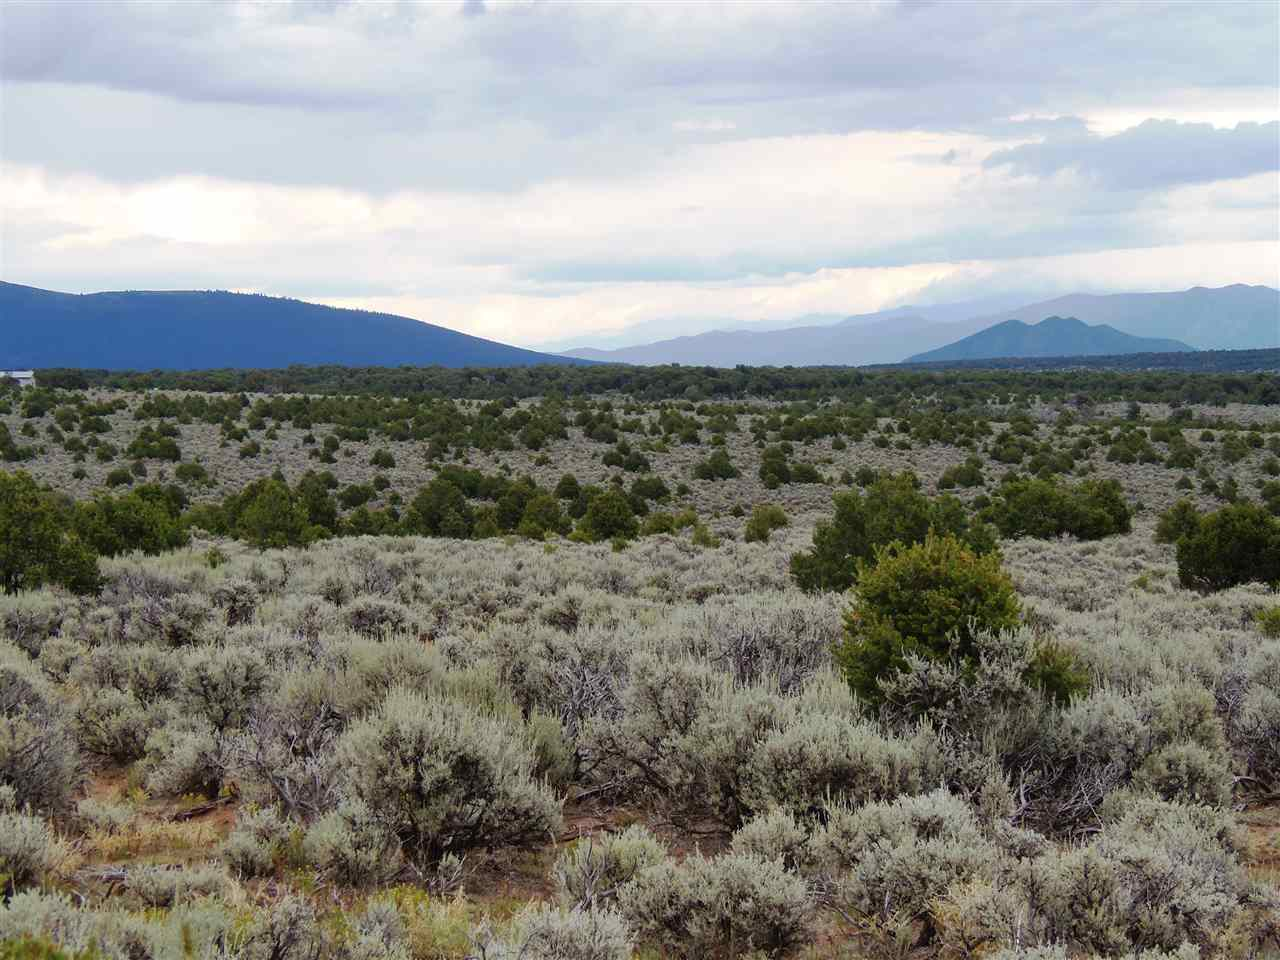 7/10 M Colorado Rd. on Rt., Tres Piedras, NM 87577